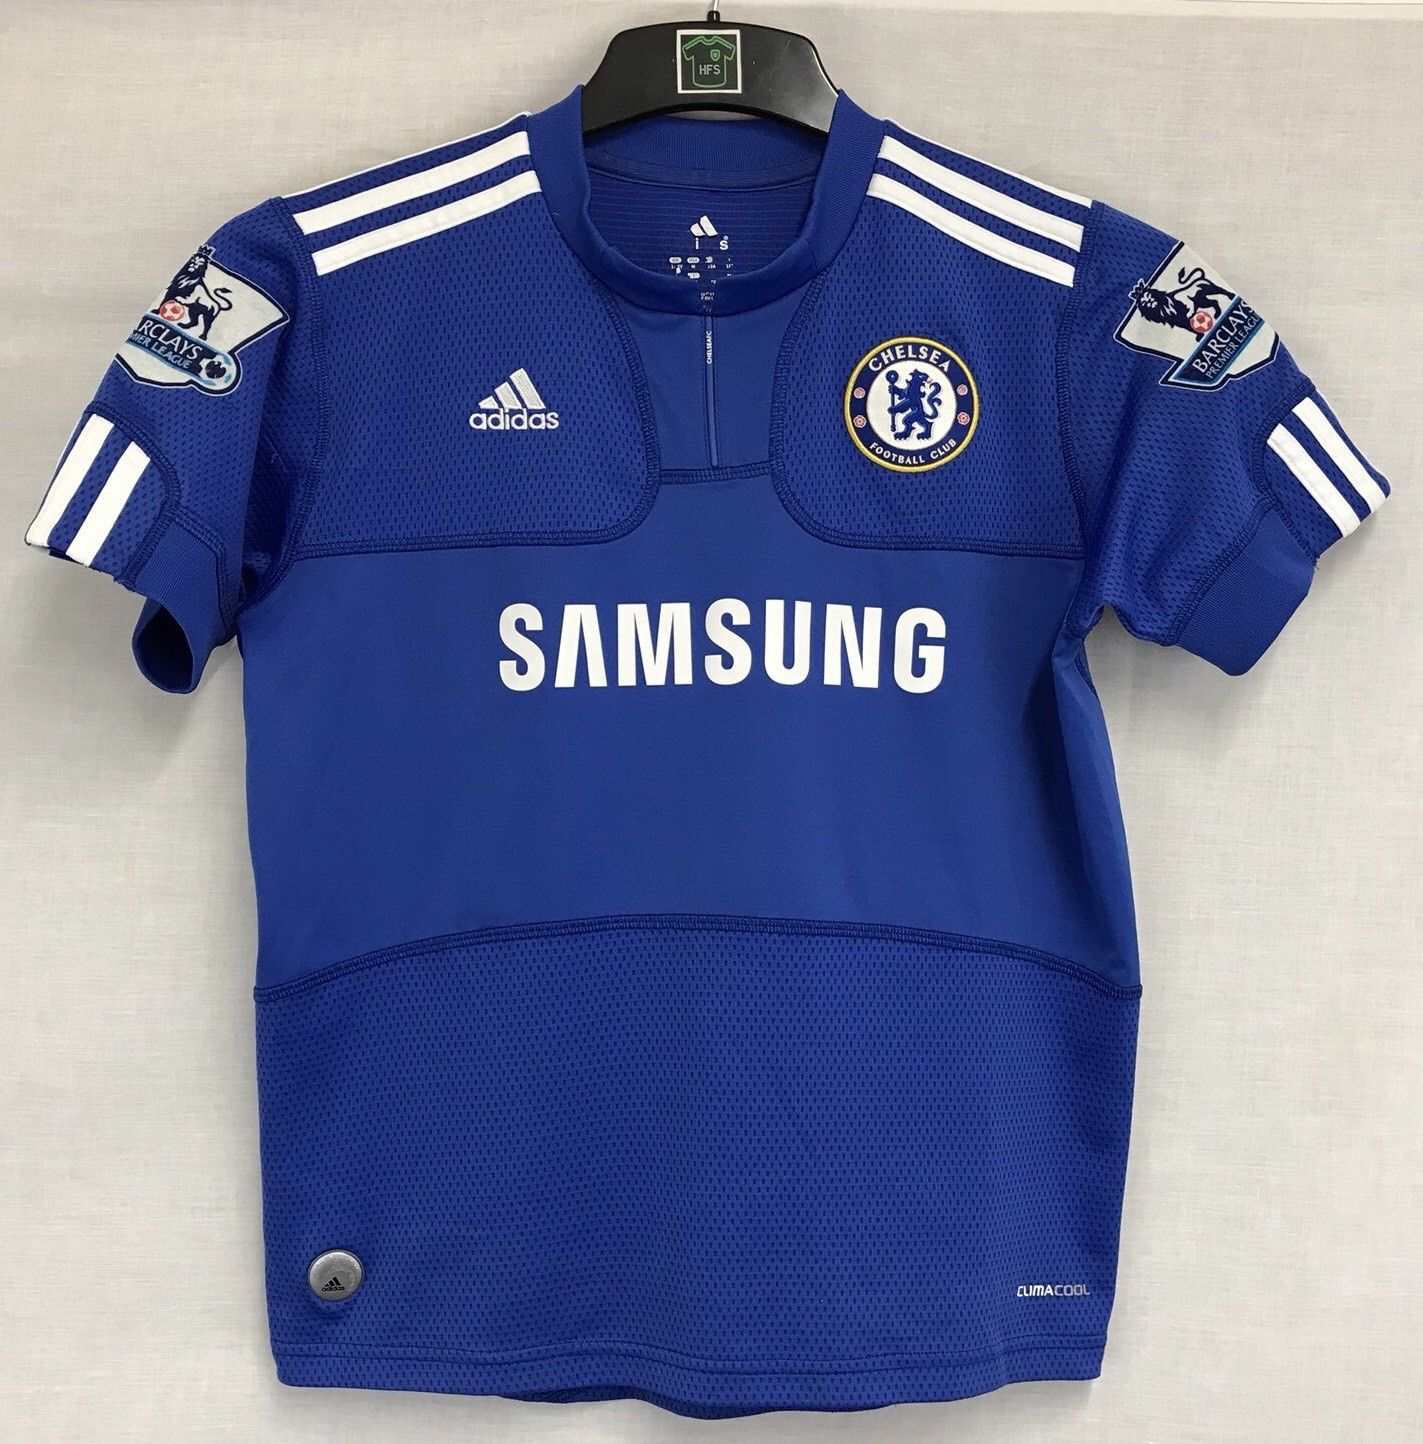 on sale e5768 34c9b Chelsea Frank Lampard 8 Football Shirt 2009/10 Children's 11/12 Years Adidas